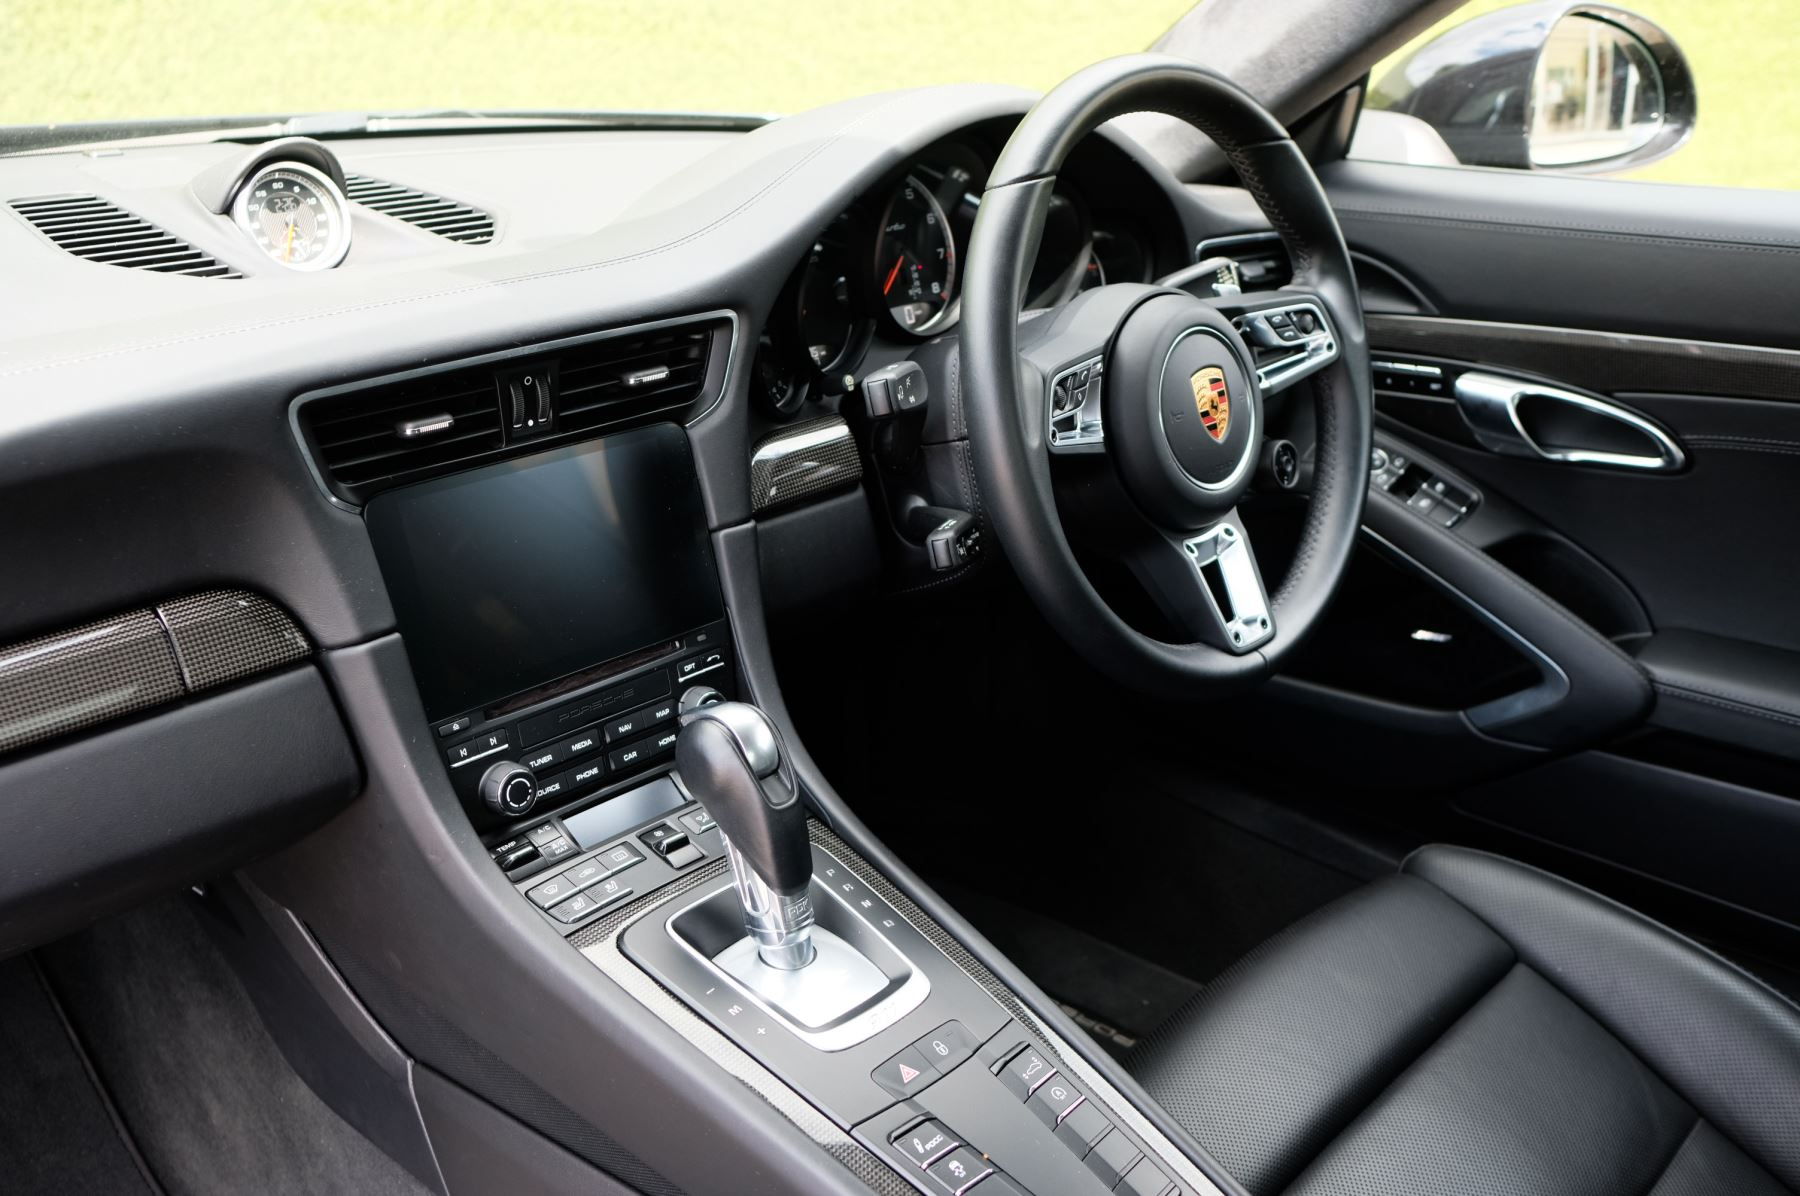 Porsche 911 PDK - Carbon interior package - Privacy Glass - 20 inch Sport Classic wheels image 20